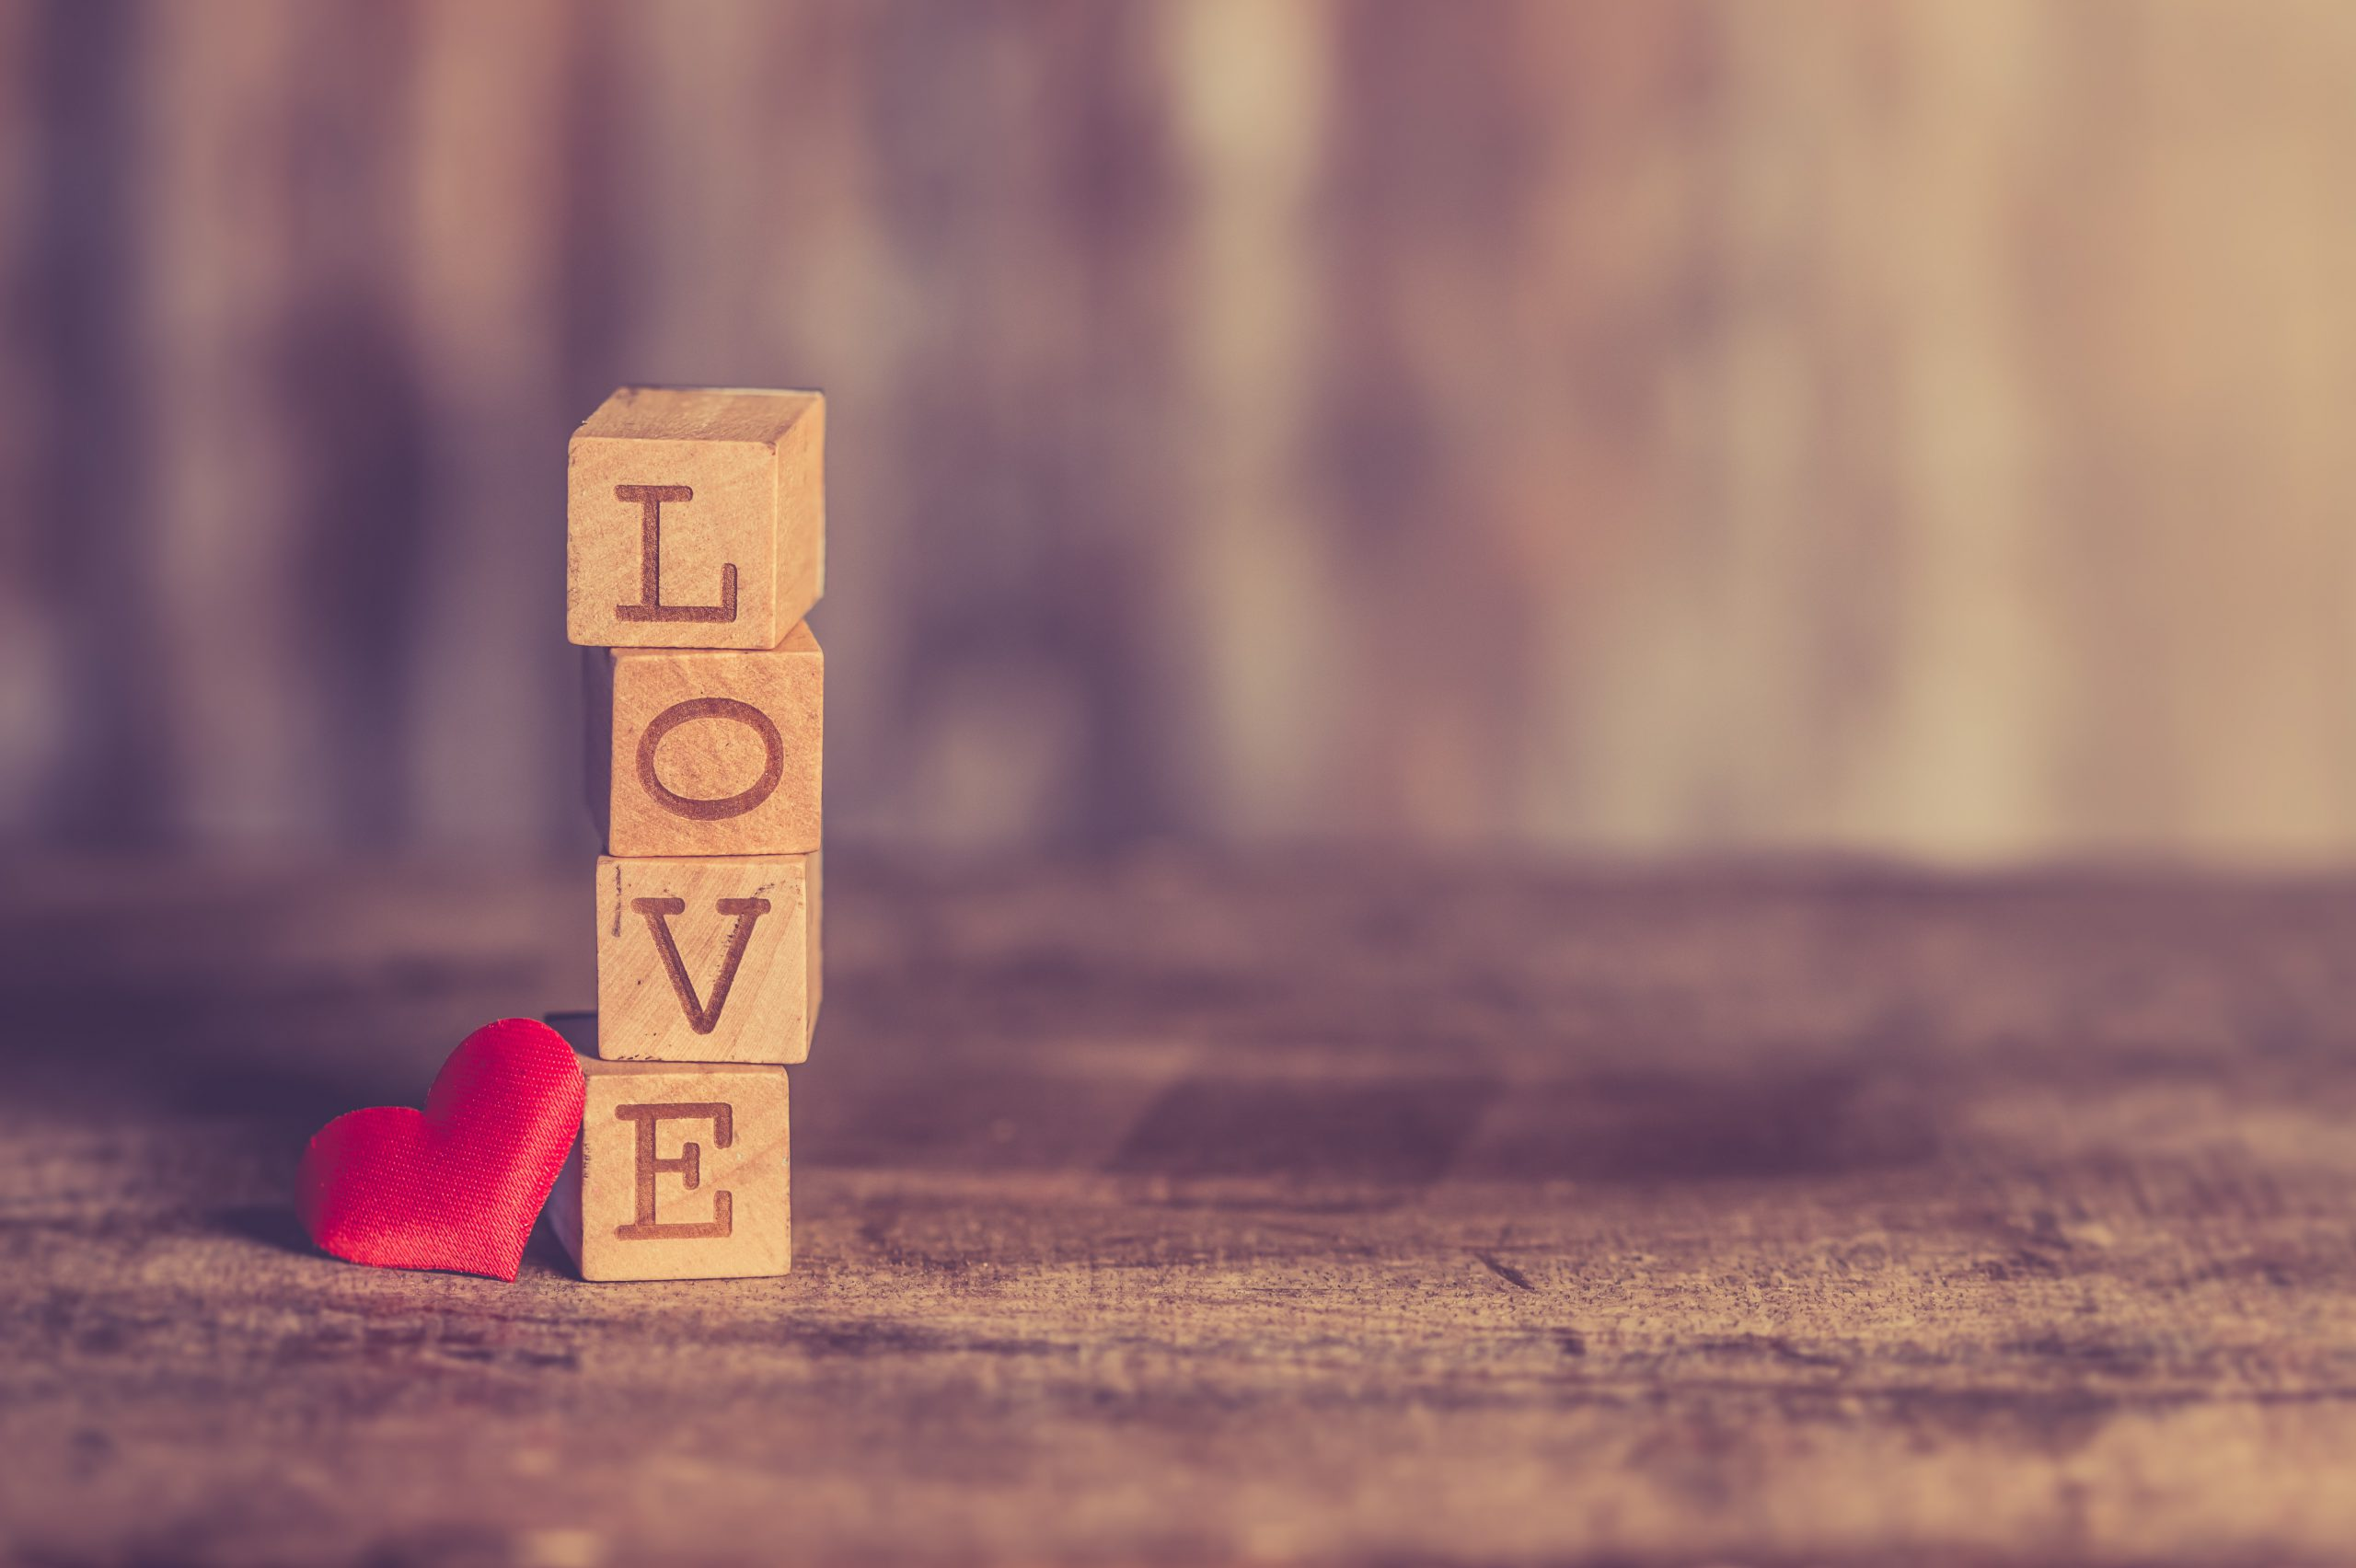 stack-of-love-wooden-blocks-810036